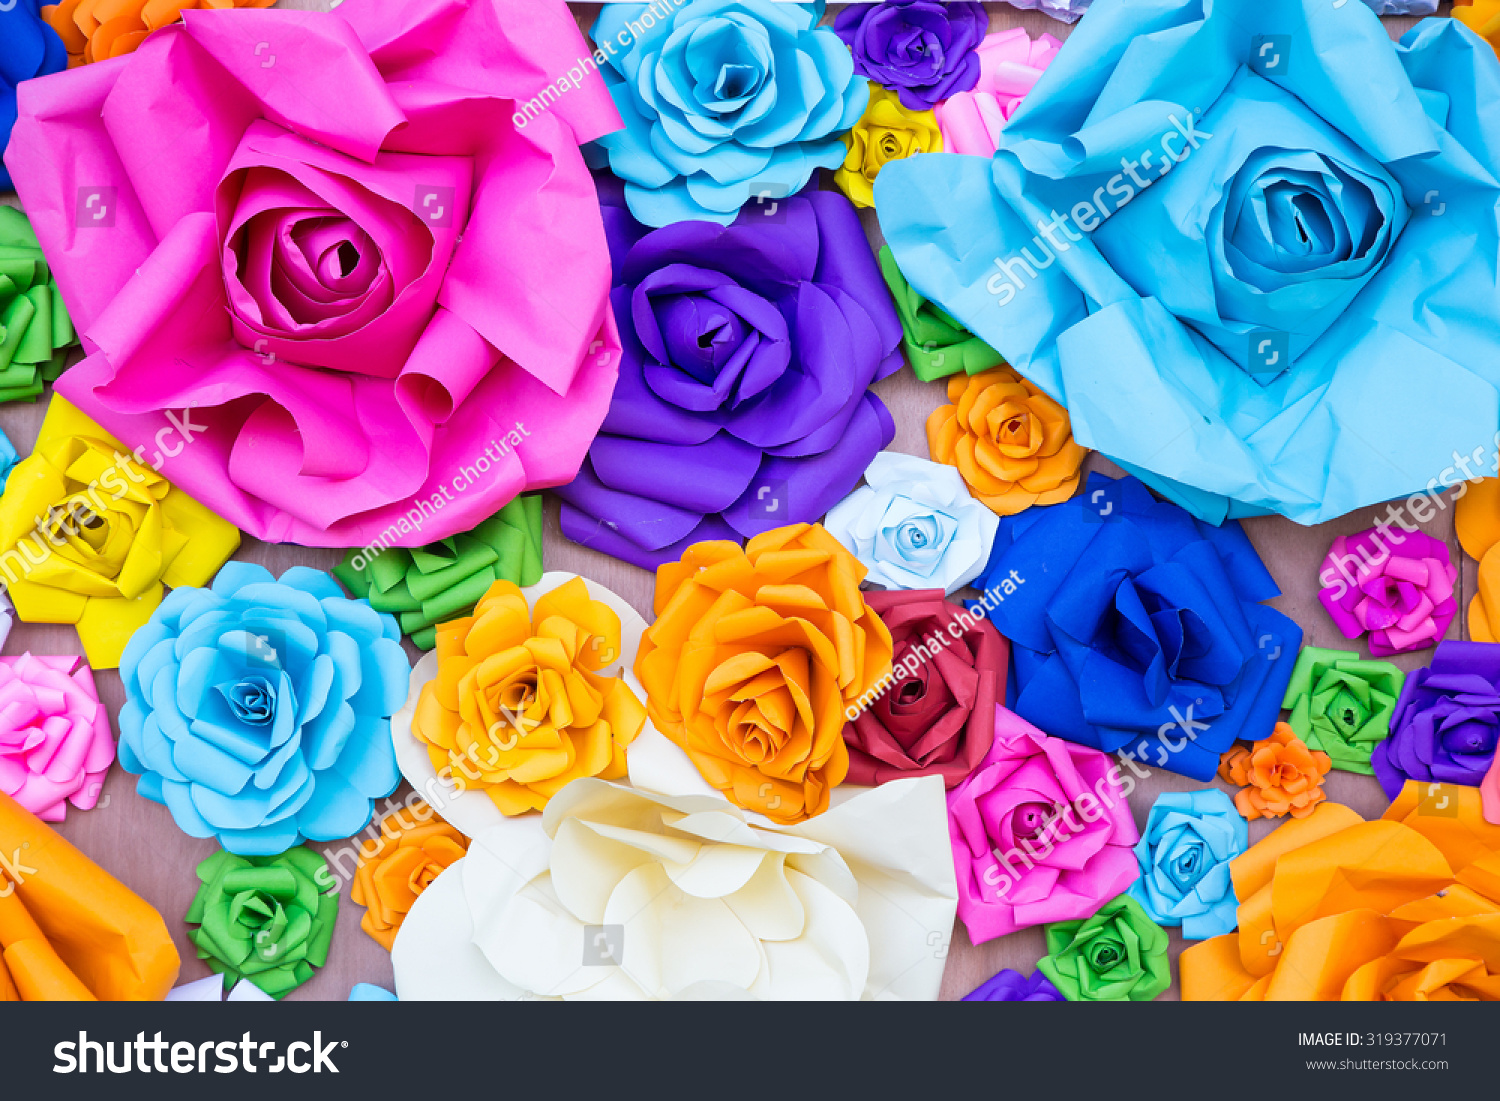 Abstract Wallpaper Rainbow Colorful Rose Flower Stock Photo 100